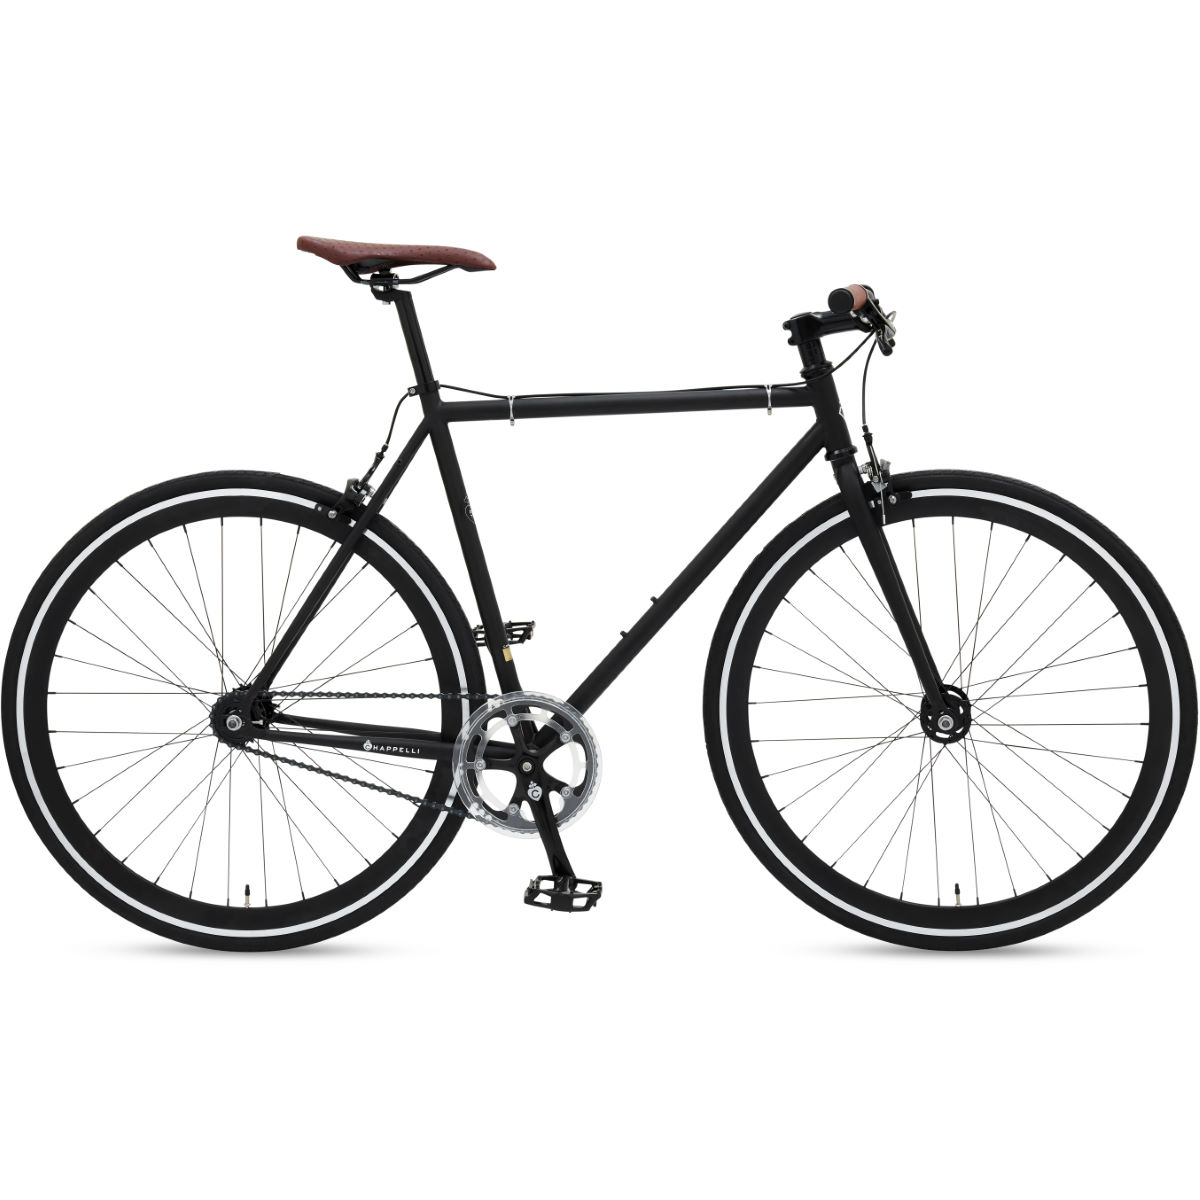 Chappelli Modern Single Speed Bike (2017) - Bicicletas fixie